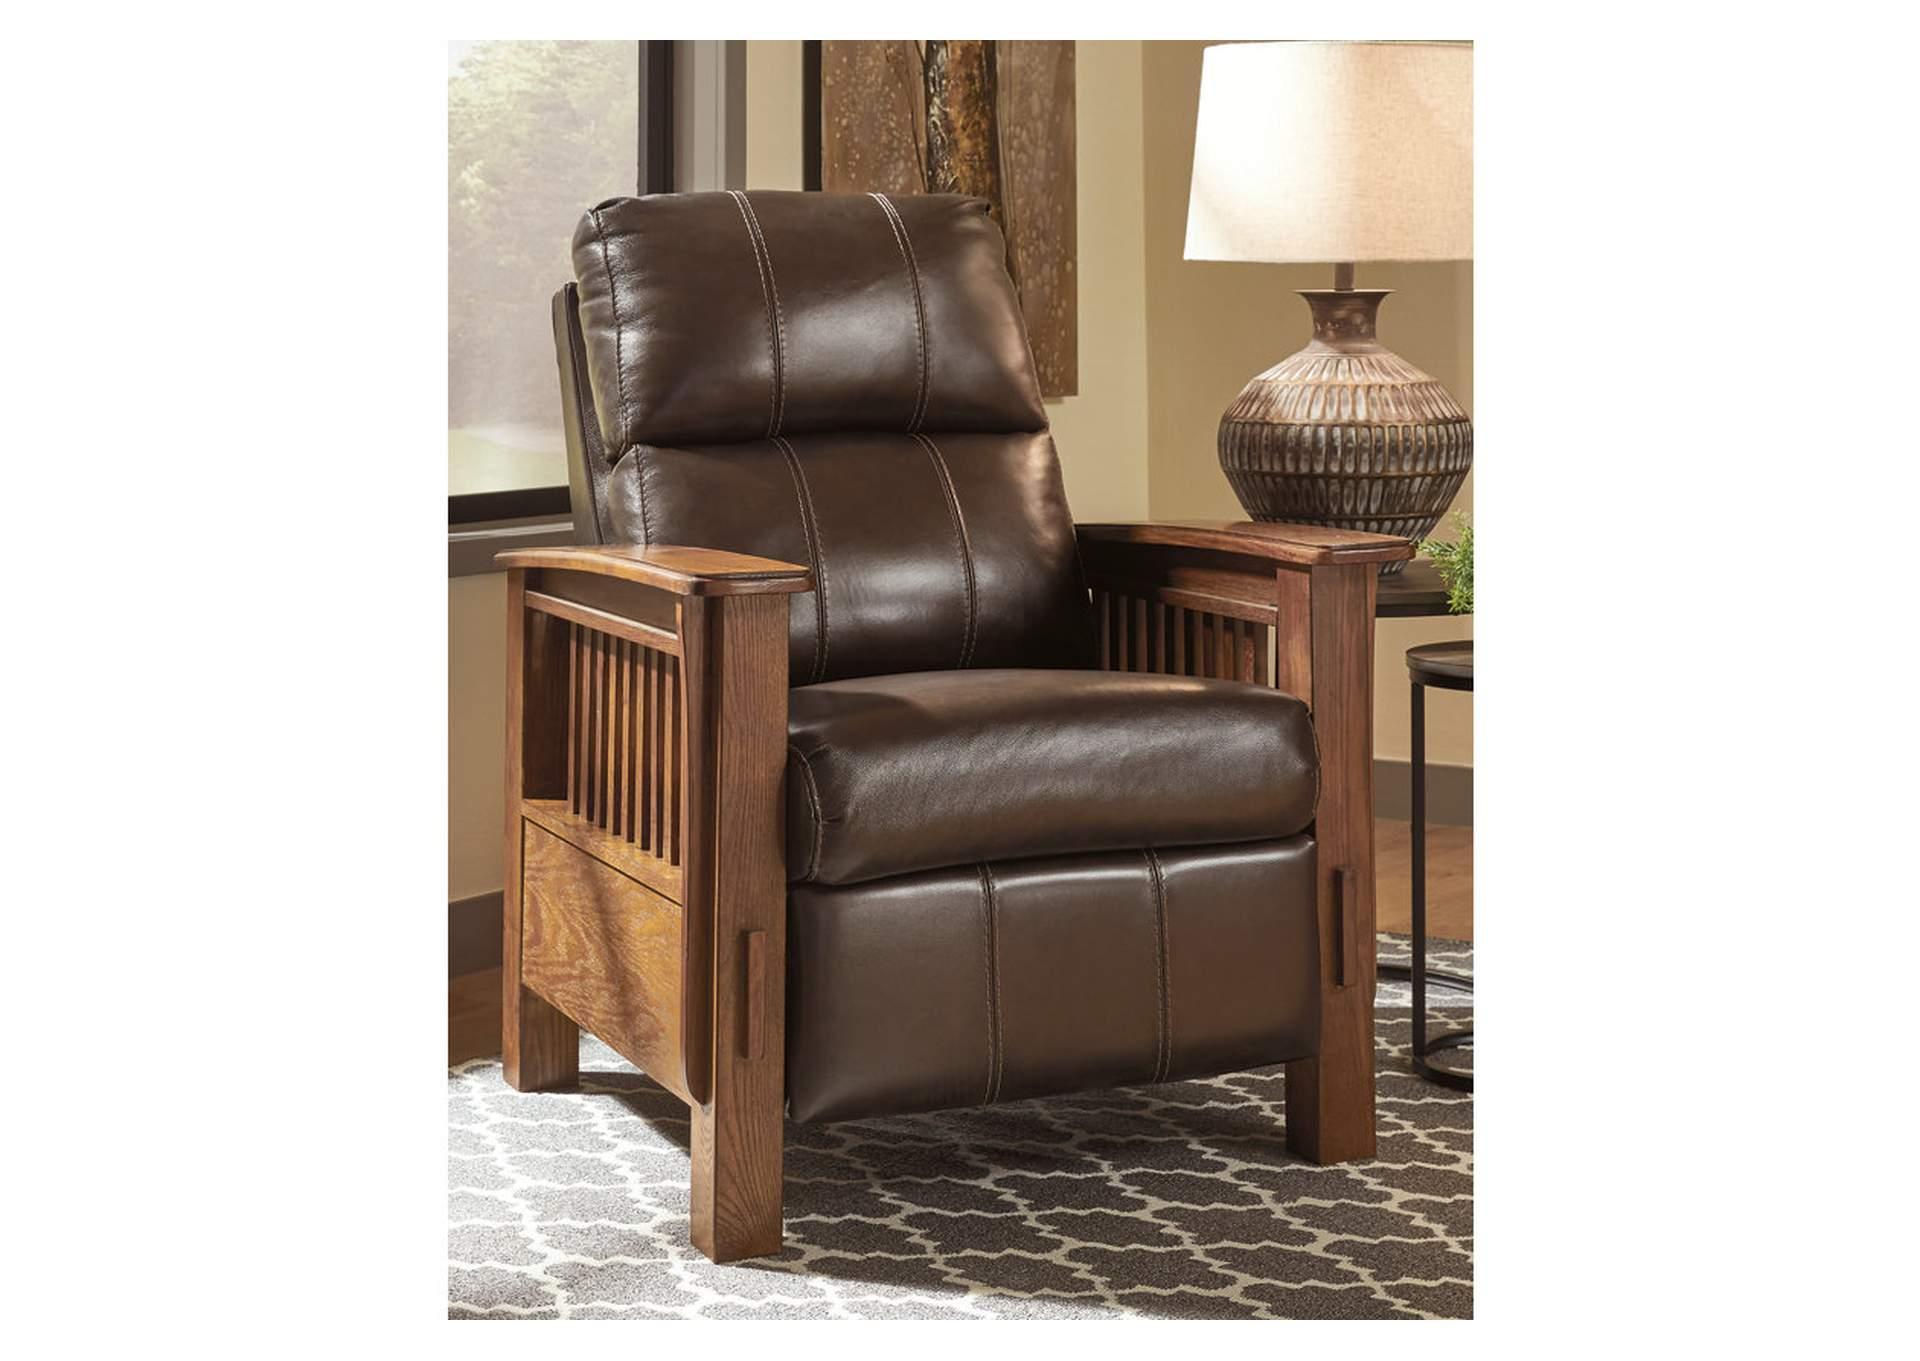 Cowlitz Recliner,Signature Design By Ashley